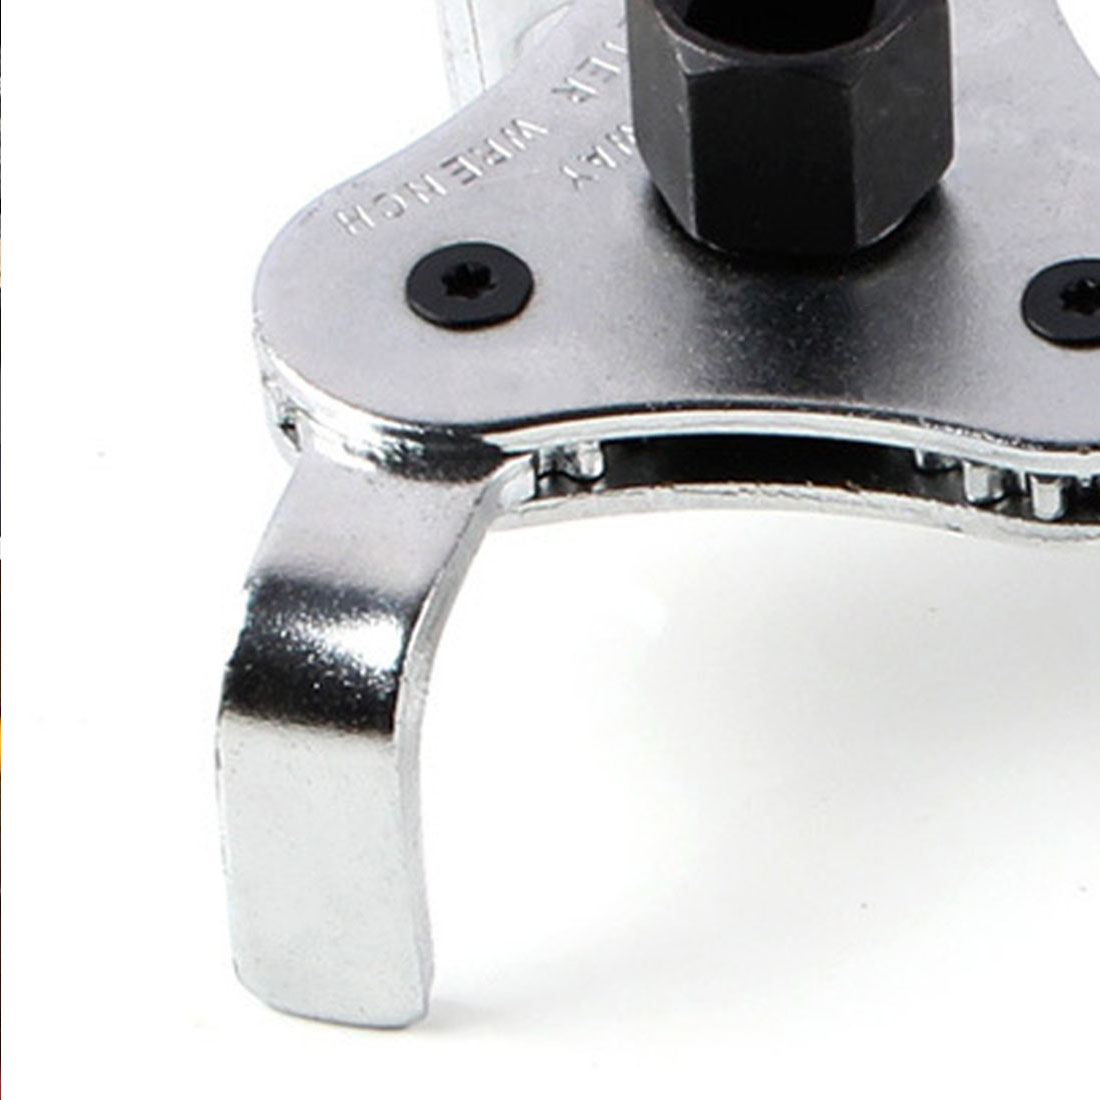 Adjustable Two Way 53-108mm Oil Filter Wrench 3 Jaw Remover Tool For Cars Trucks 3